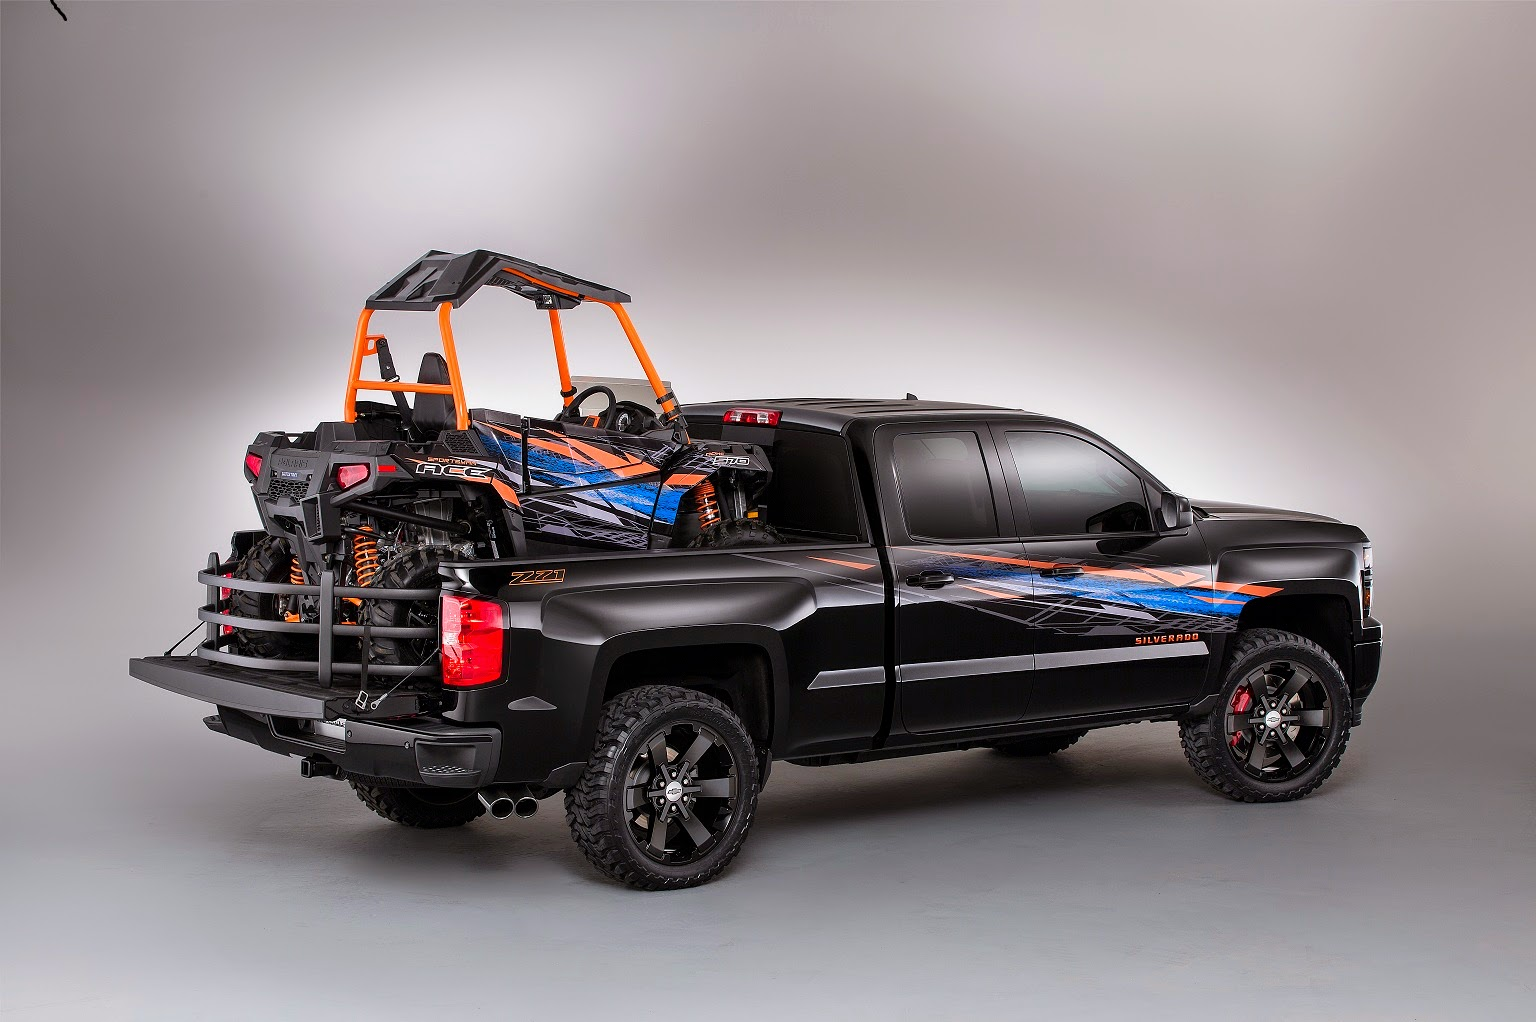 Chevrolet Silverado Polaris ACE+